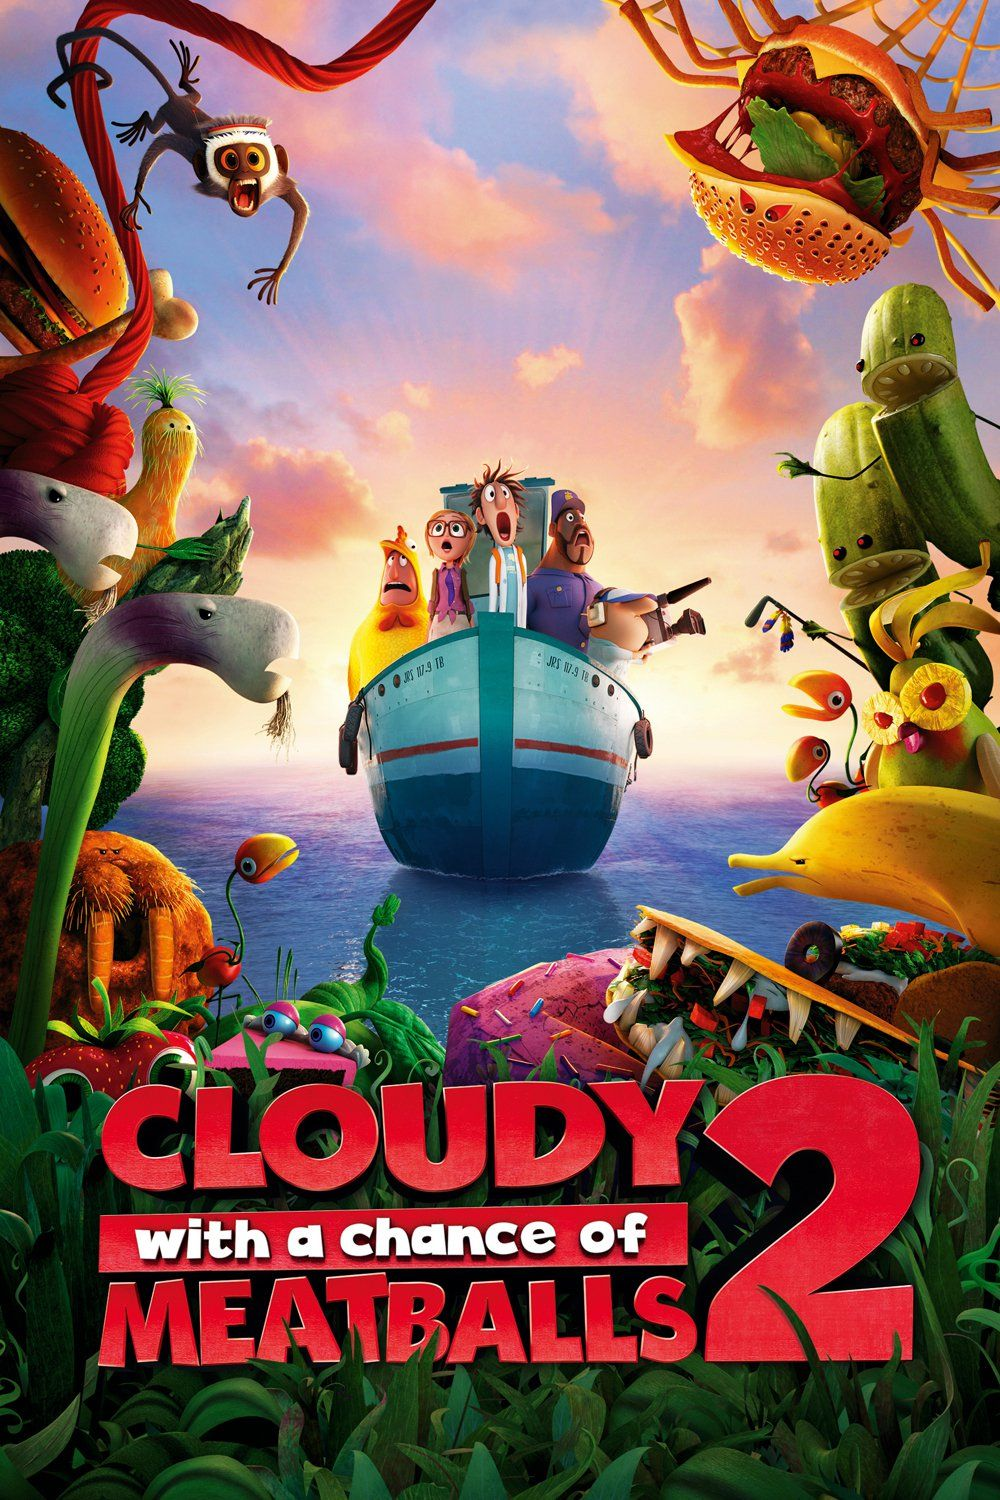 Free Full Cartoon Movies click image to watch cloudy with a chance of meatballs 2